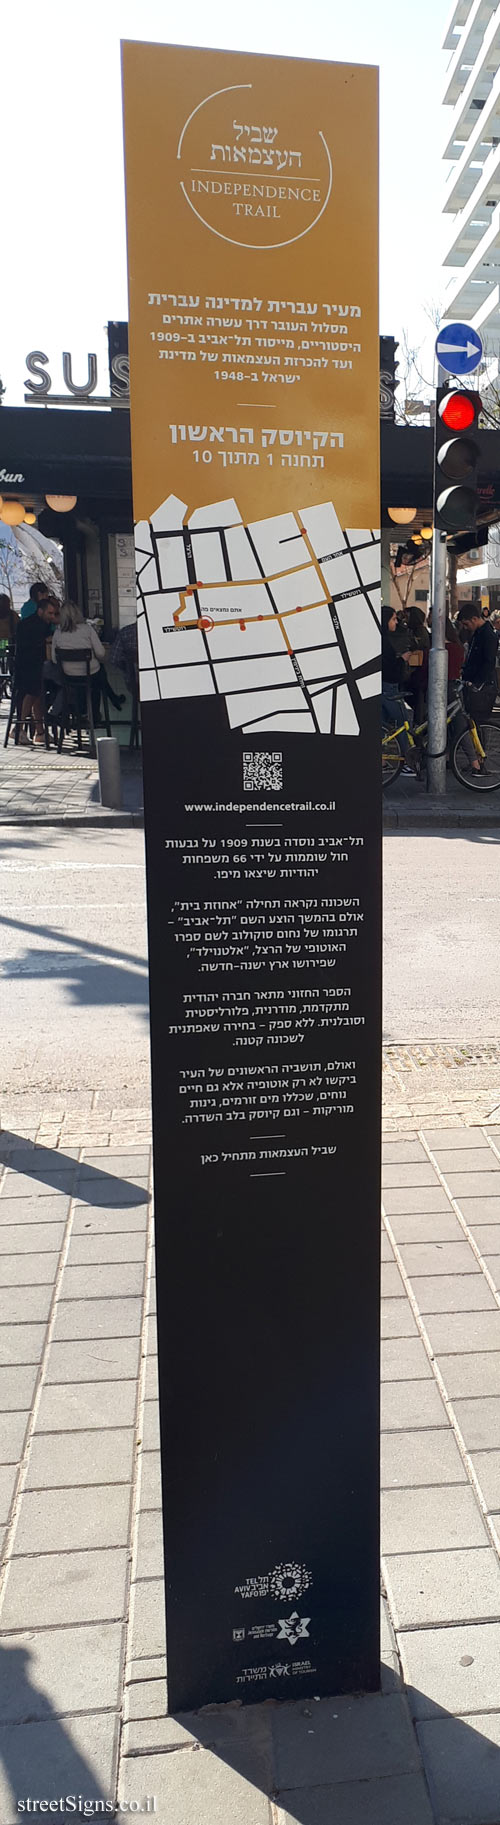 Tel Aviv - Independence Trail - The First Kiosk - Information